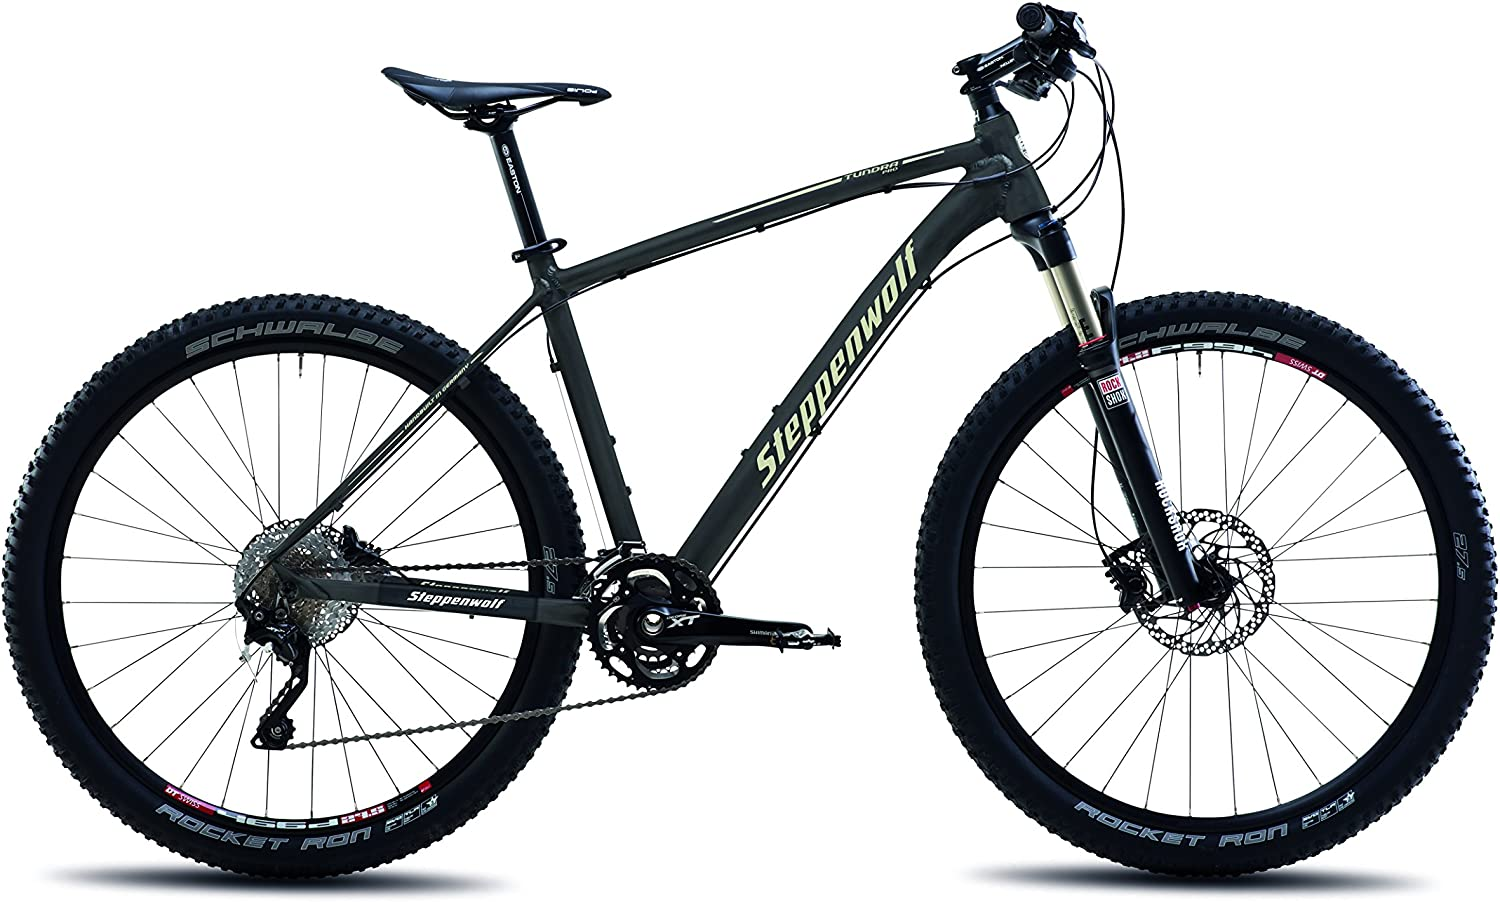 Steppenwolf Tundra Pro Hardtail Mountain Bike